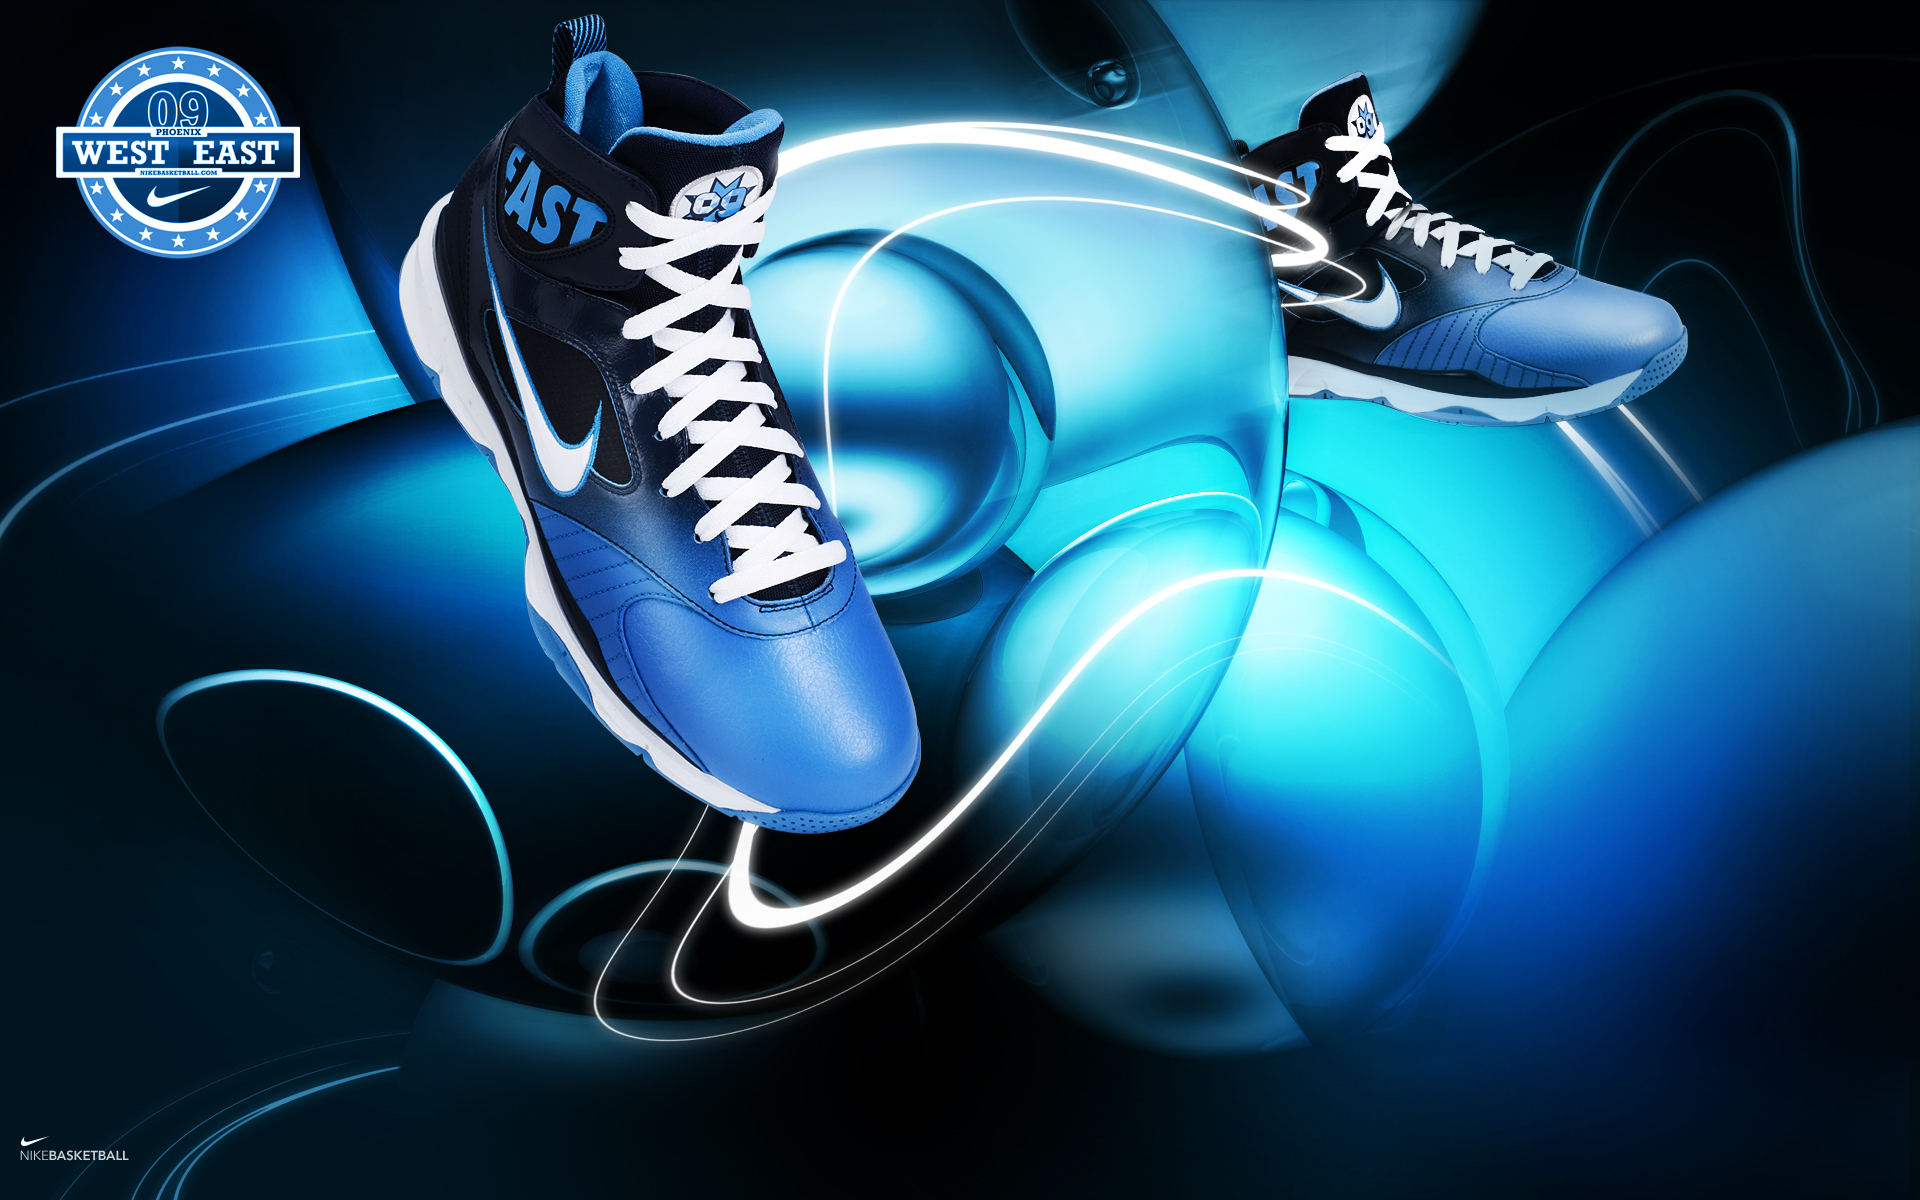 Hd Wallpapers Nike Shoes 1200 X 700 1016 Kb Png HD Wallpapers   100 1920x1200